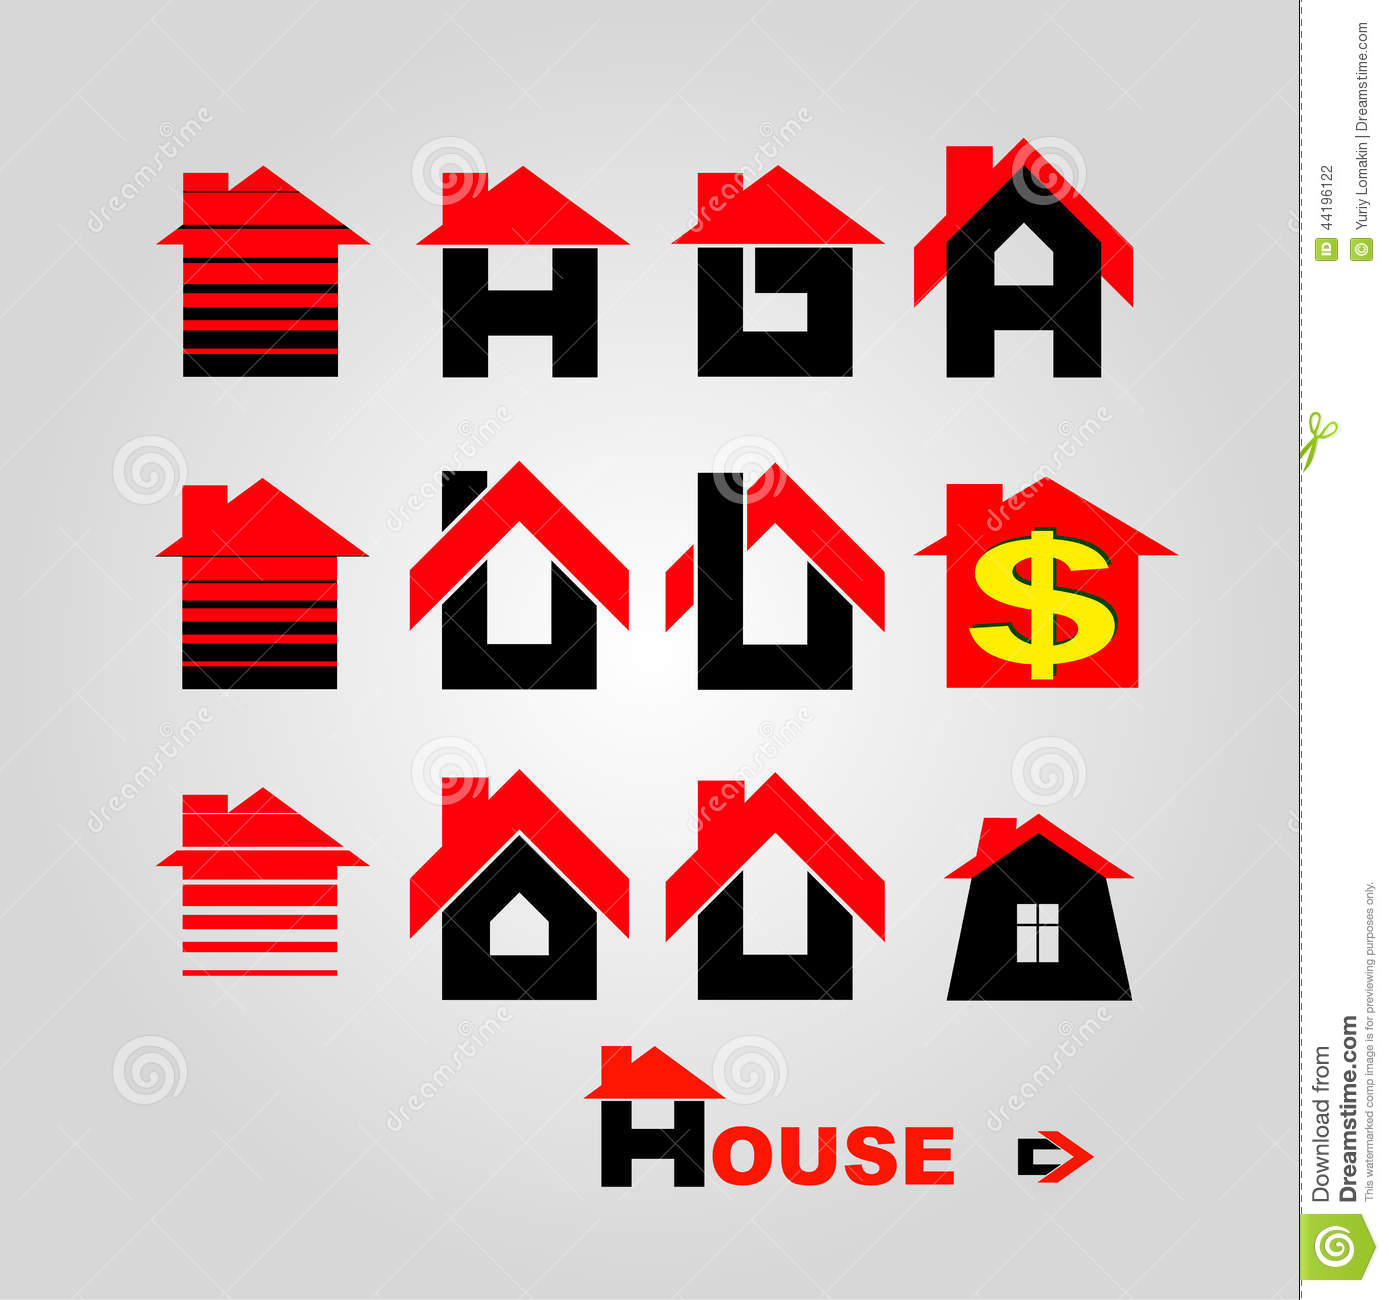 House logo stock vector image 44196122 for Firm company